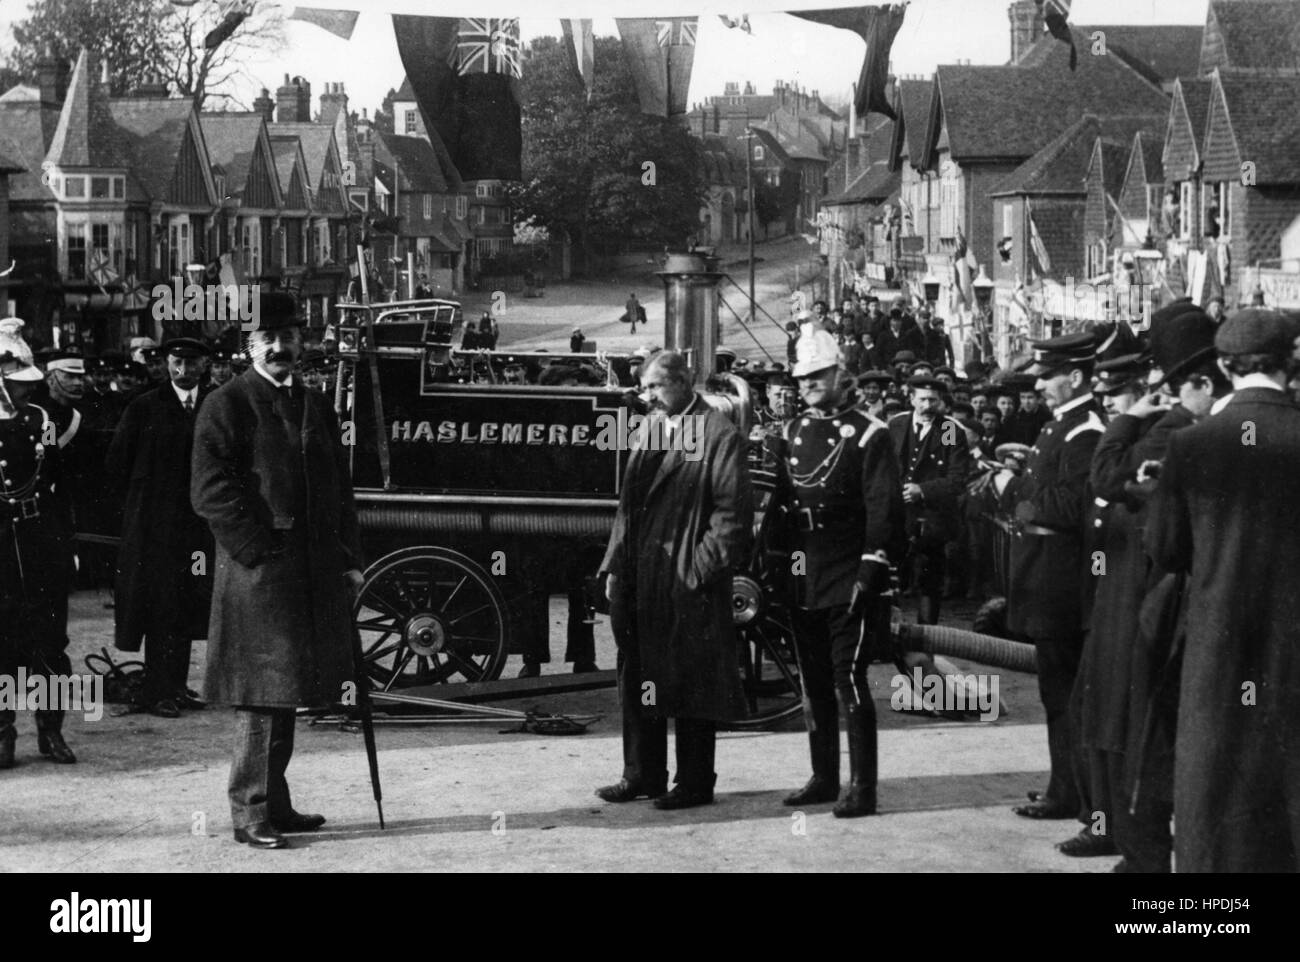 Steam fire pump in Haslemere 1890's - Stock Image